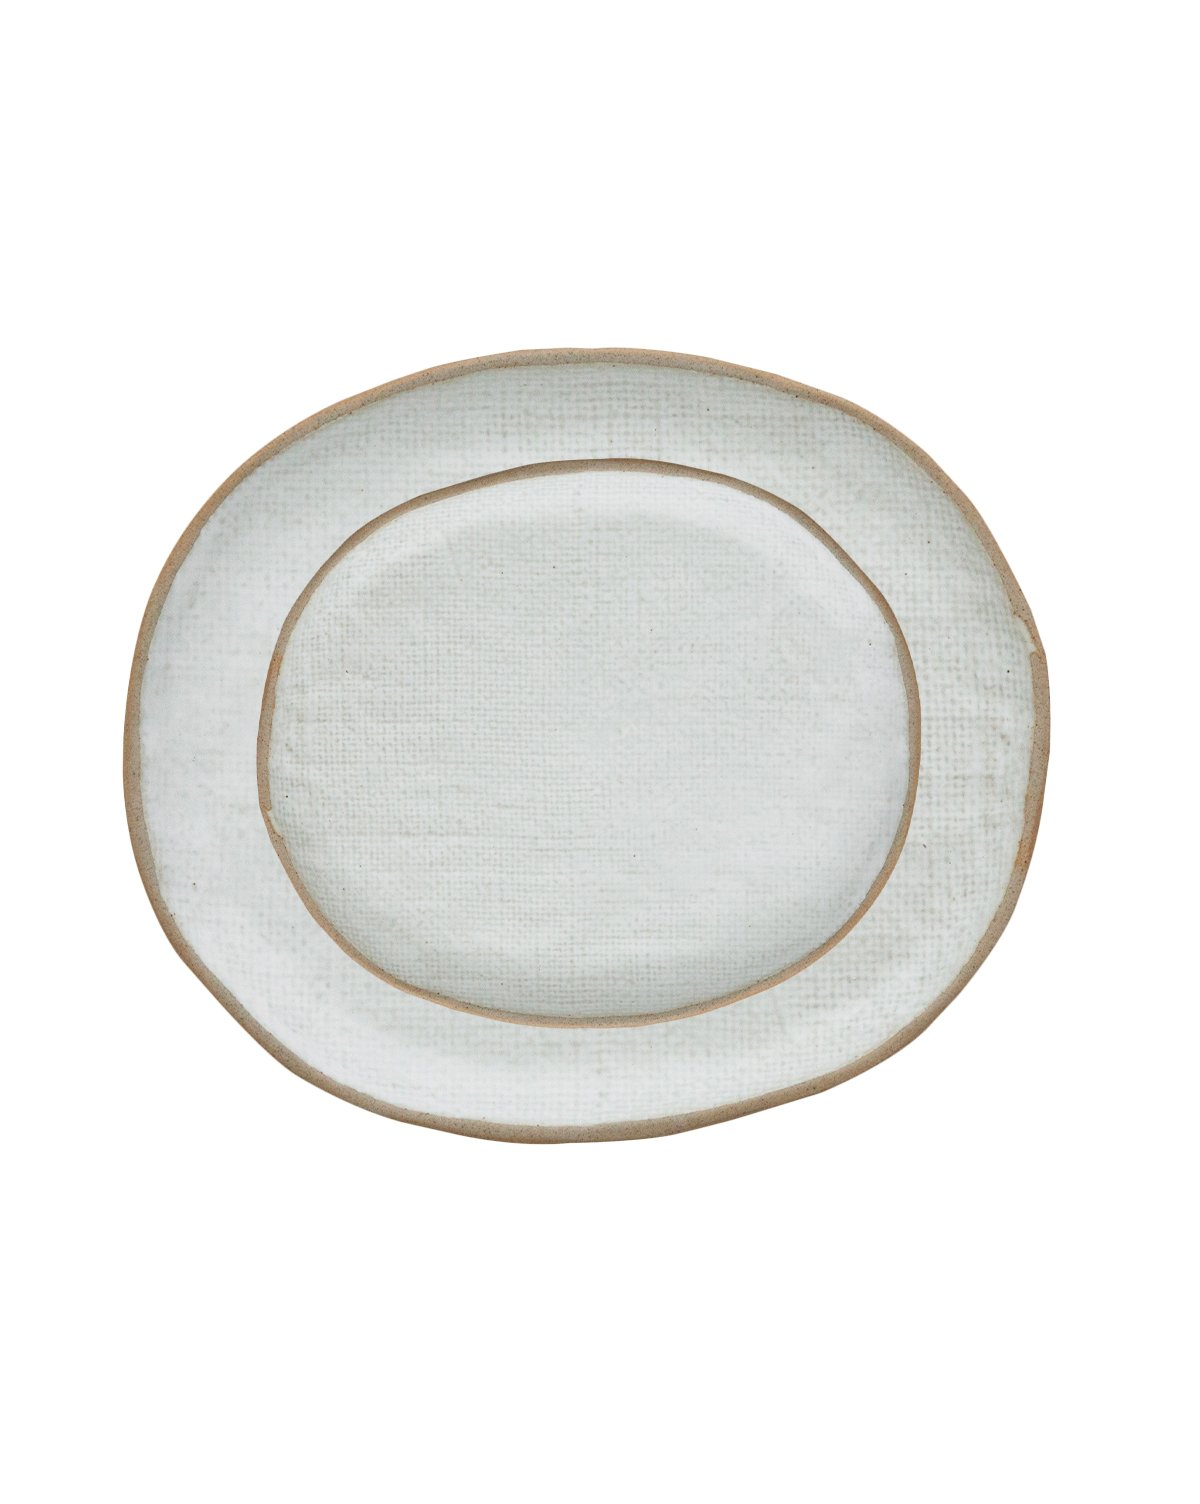 Joie Plate